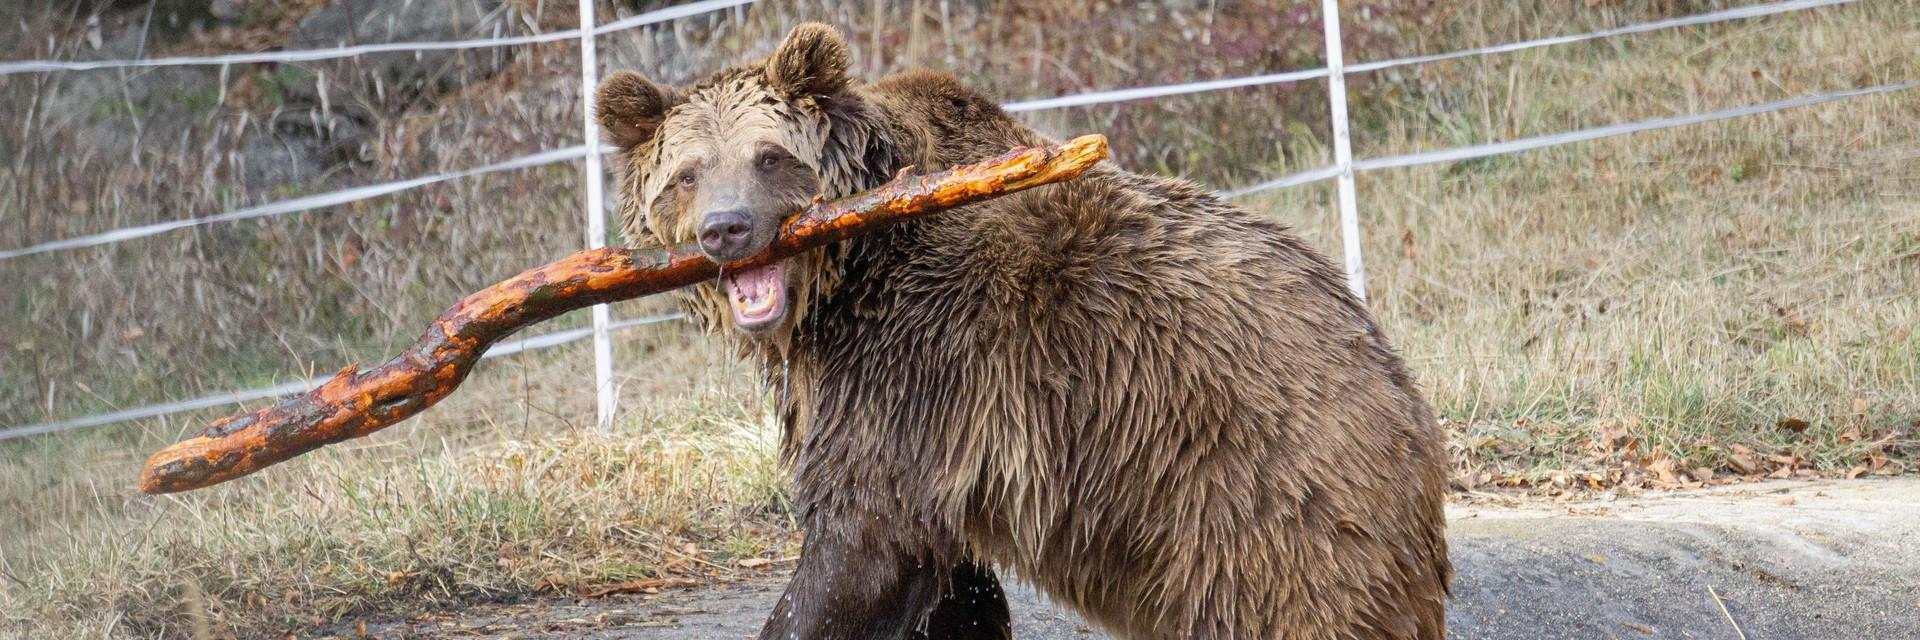 Brown bear at our sanctuary